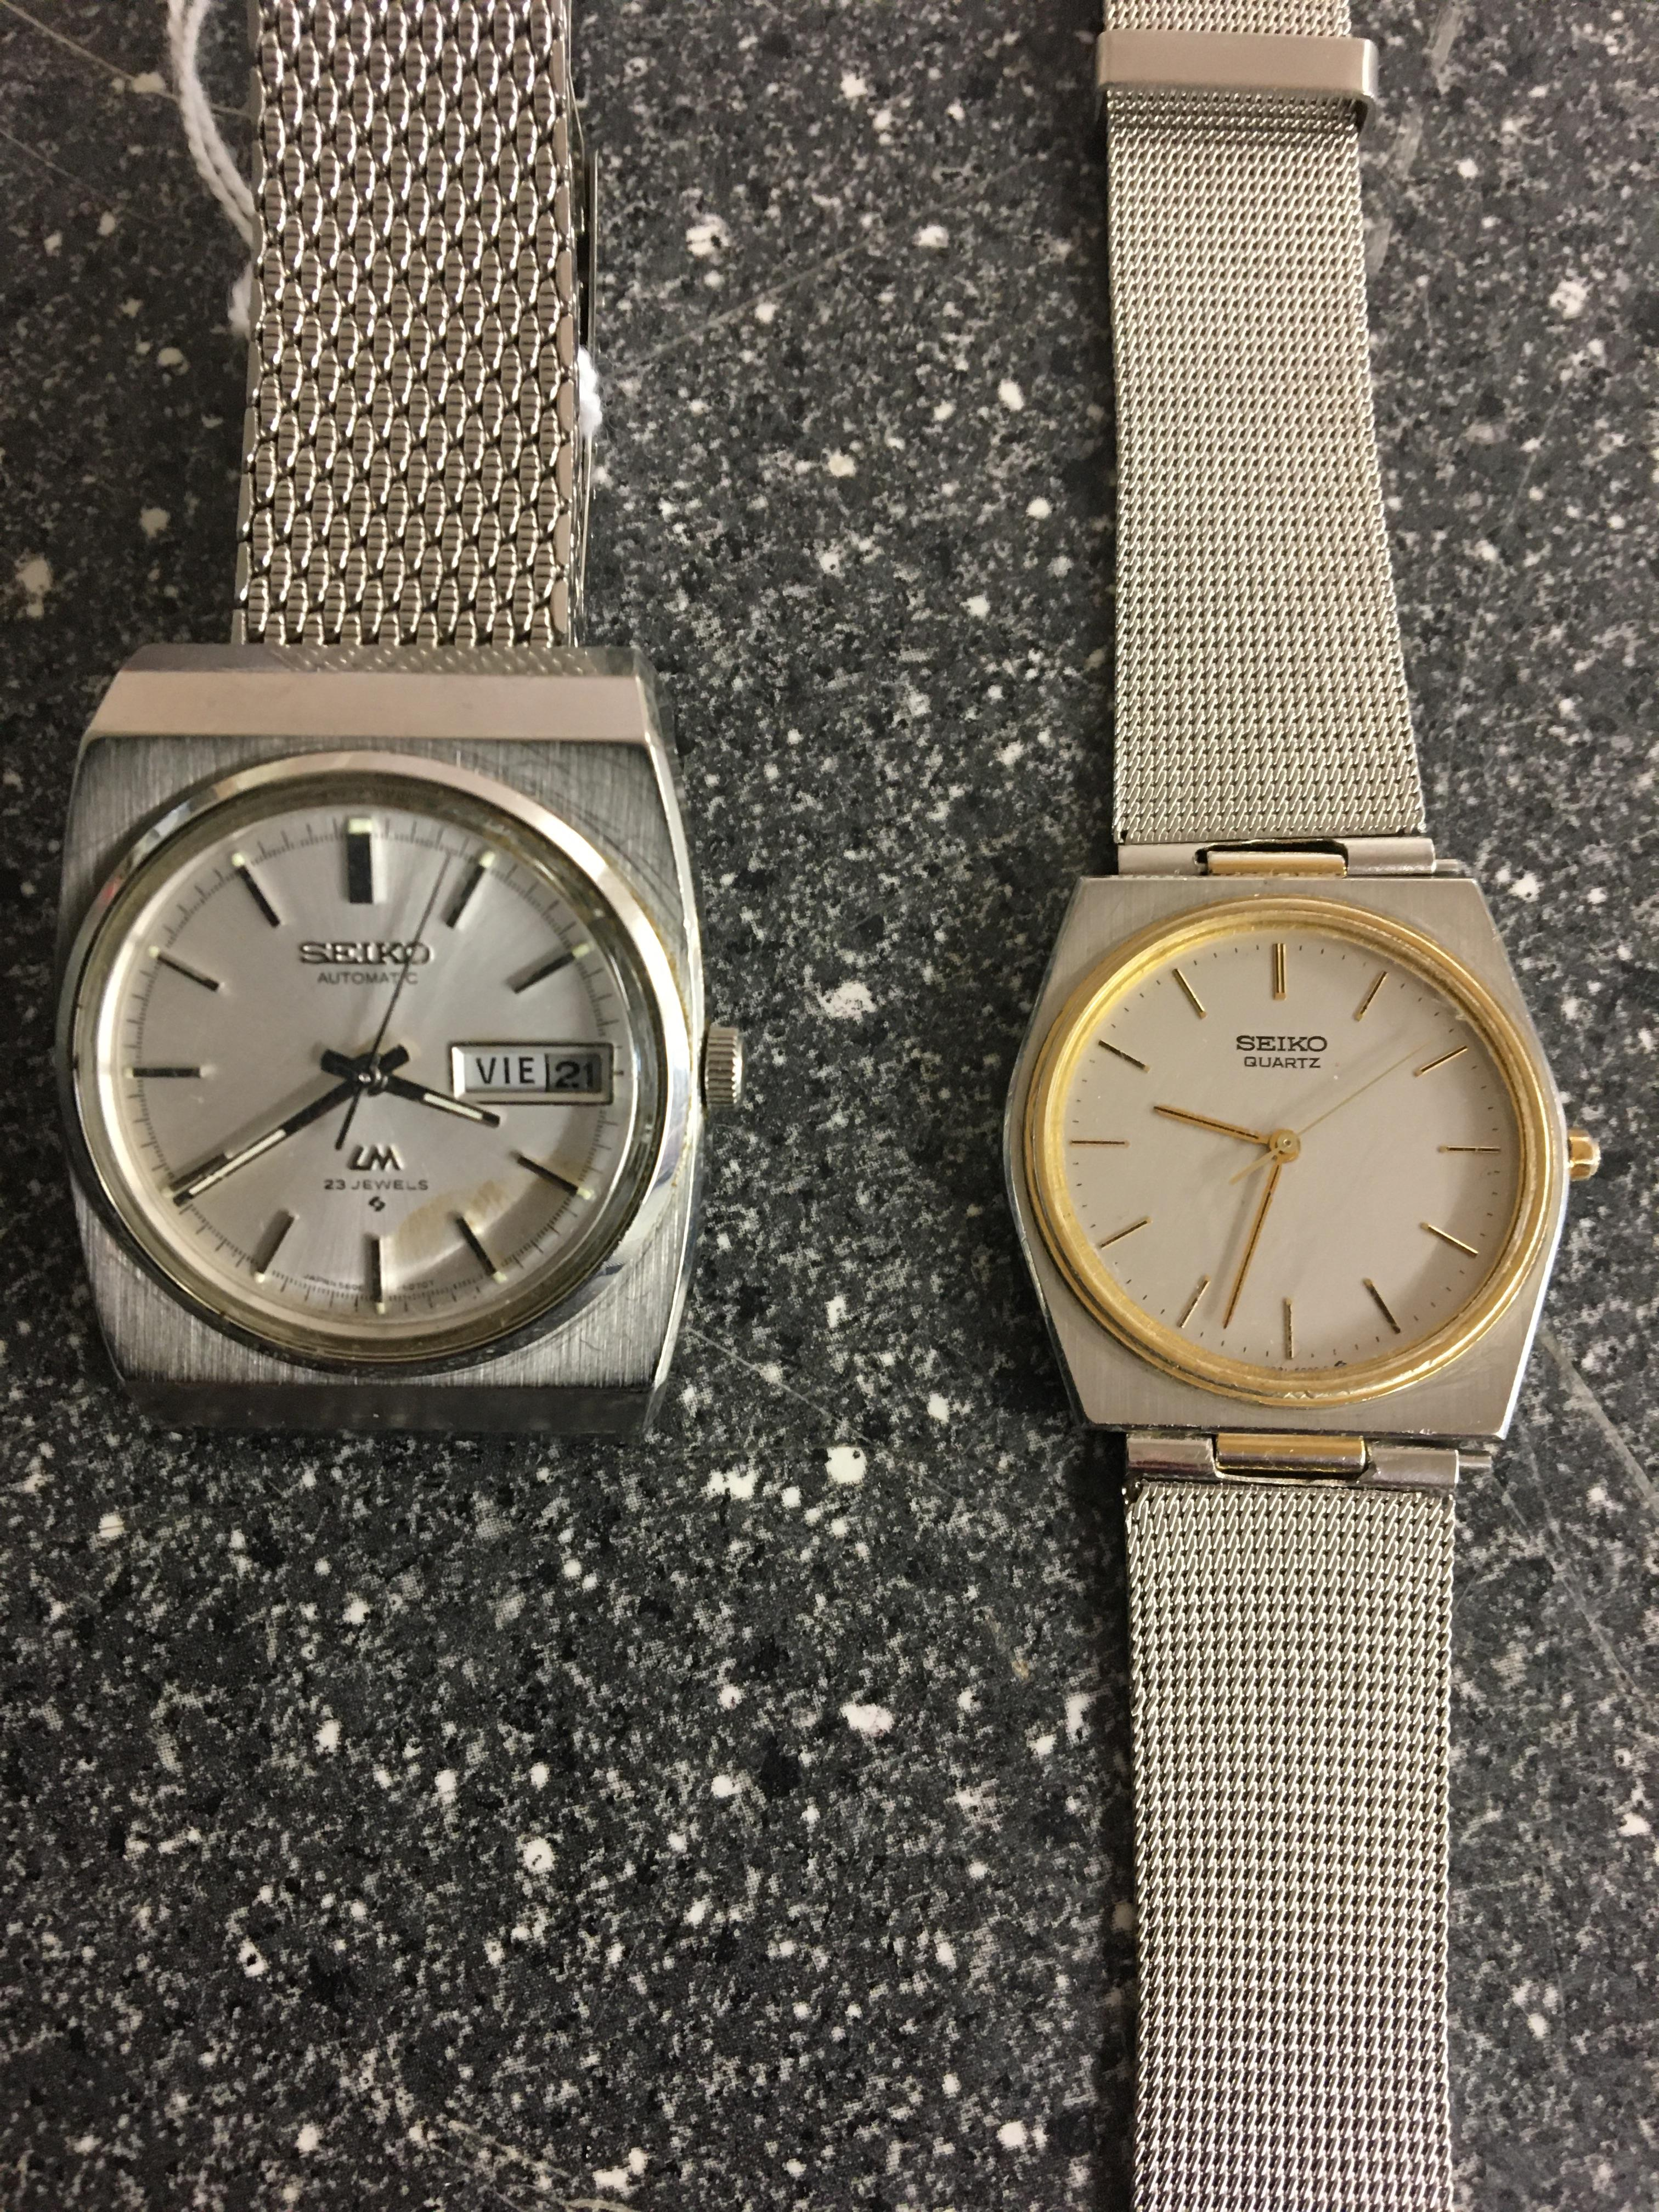 Seiko automatic day/datejust watch and quartz example.